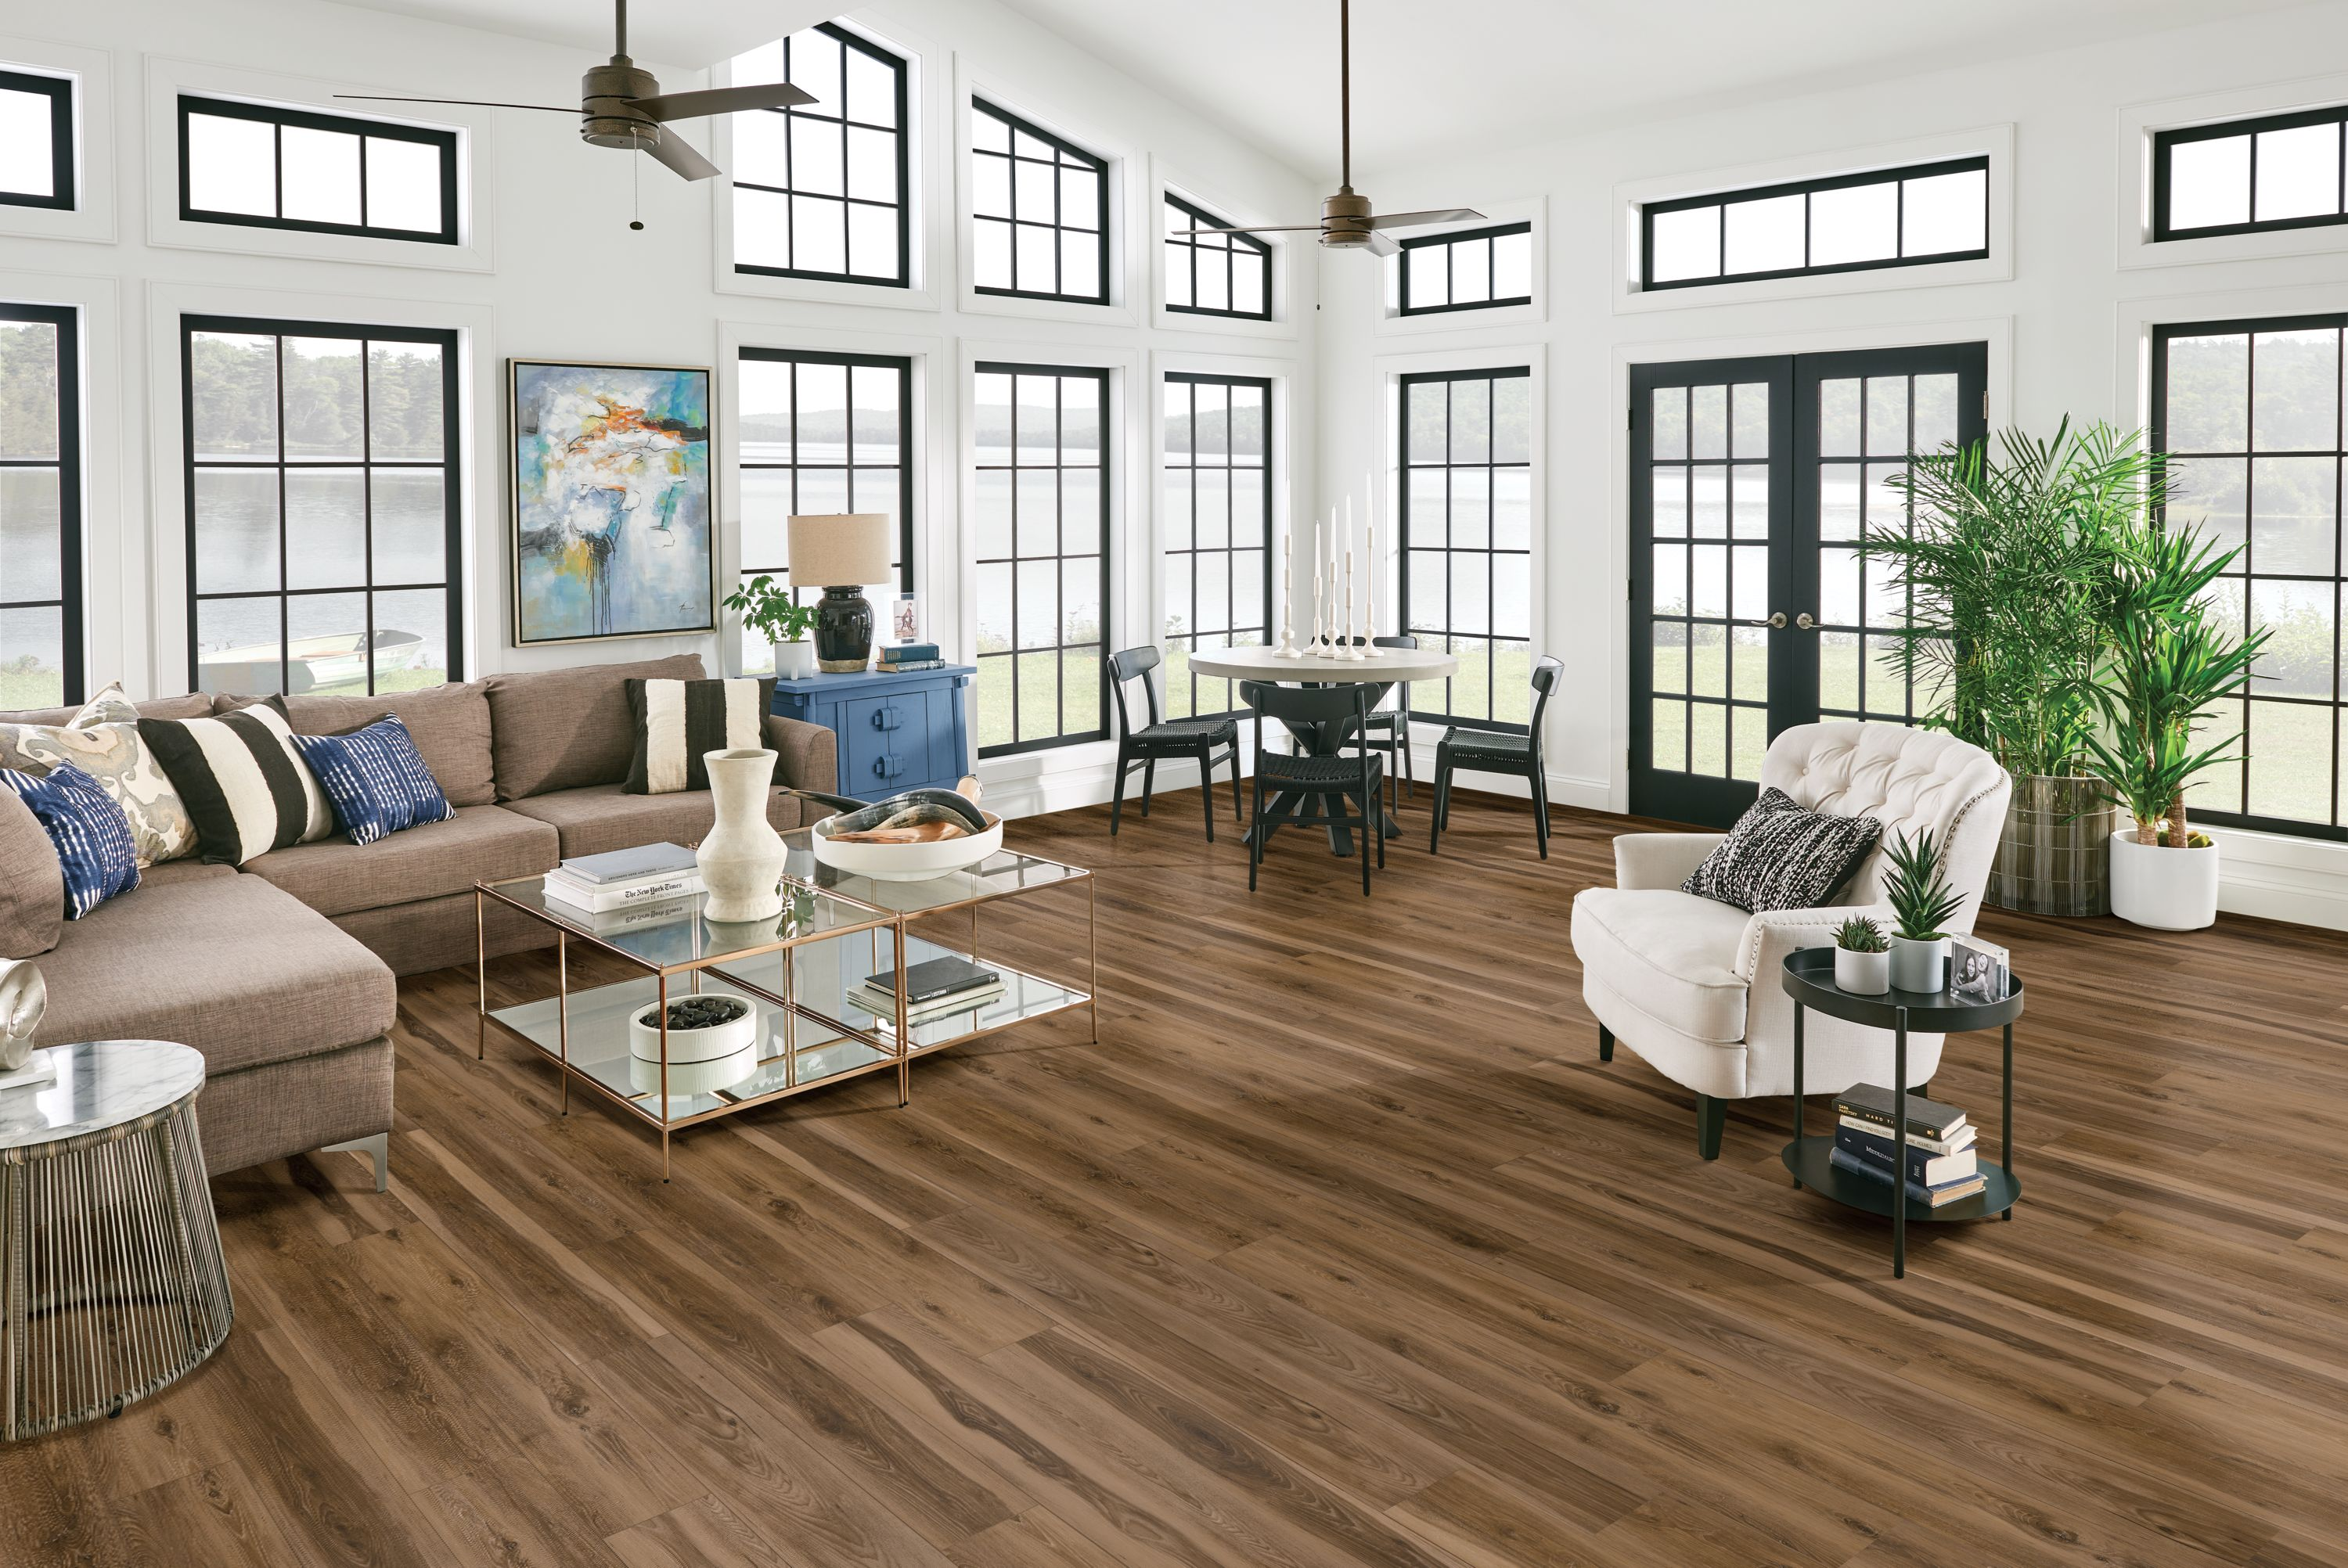 Living room flooring withrigid core - Empower